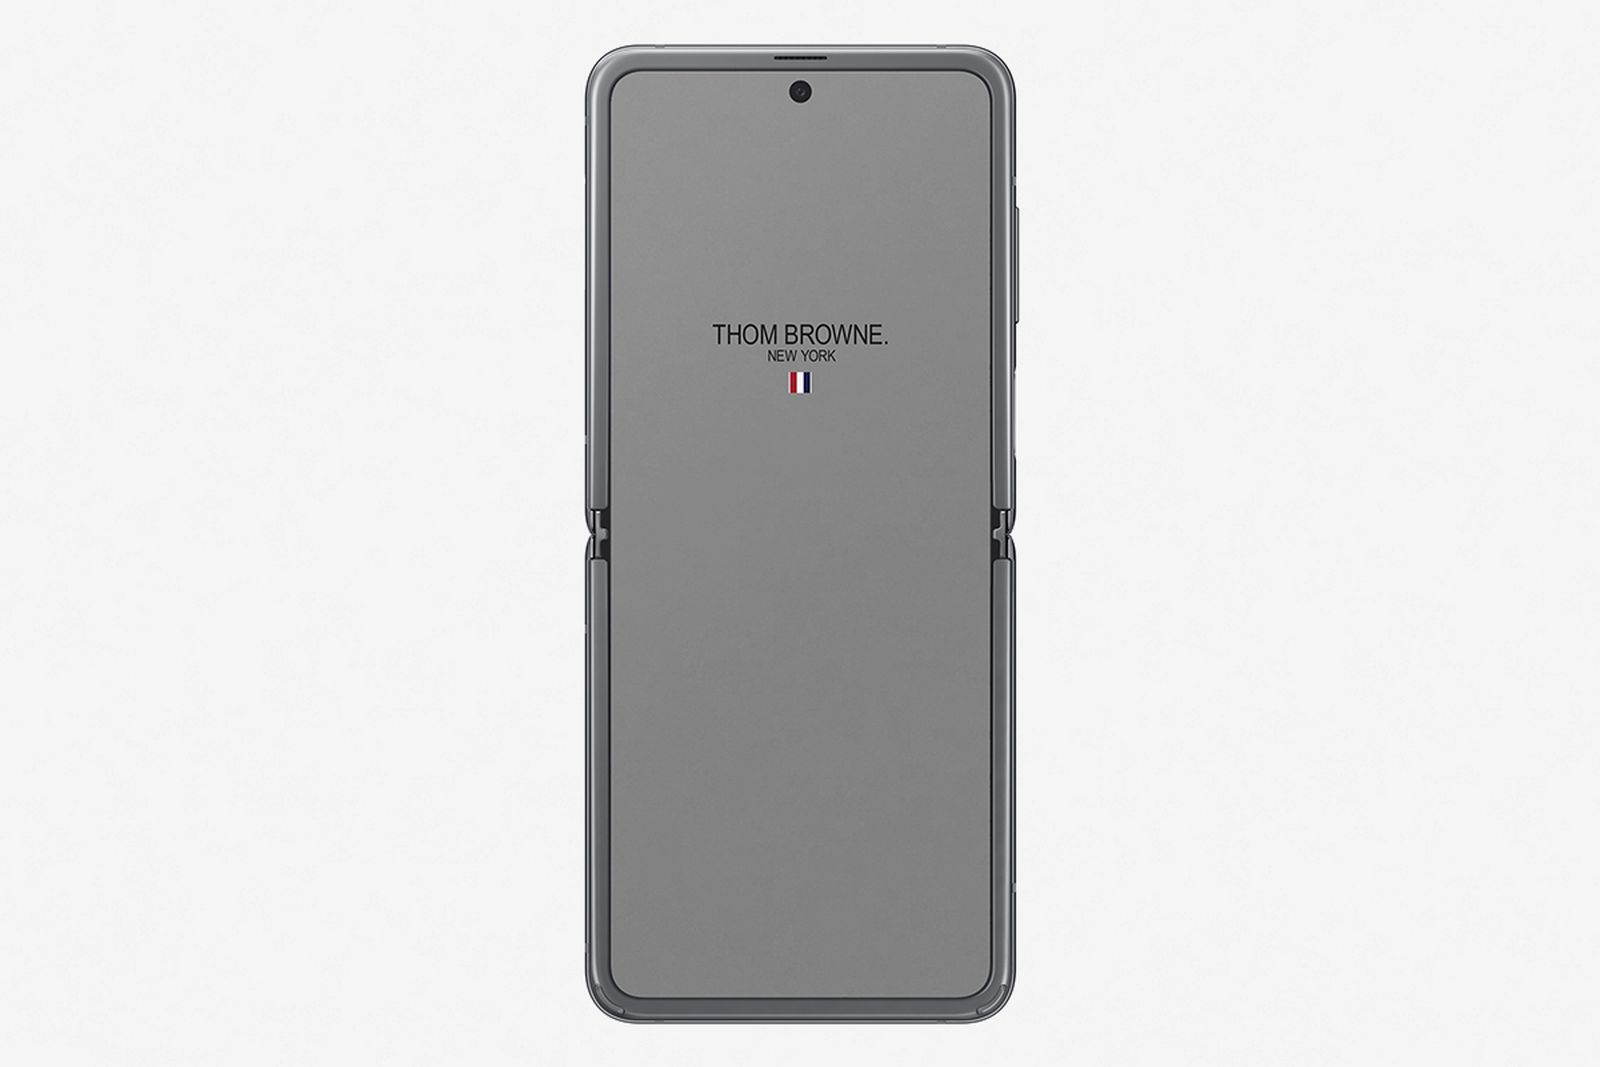 Samsung Collabs With Thom Browne On Limited Edition Galaxy Z Flip